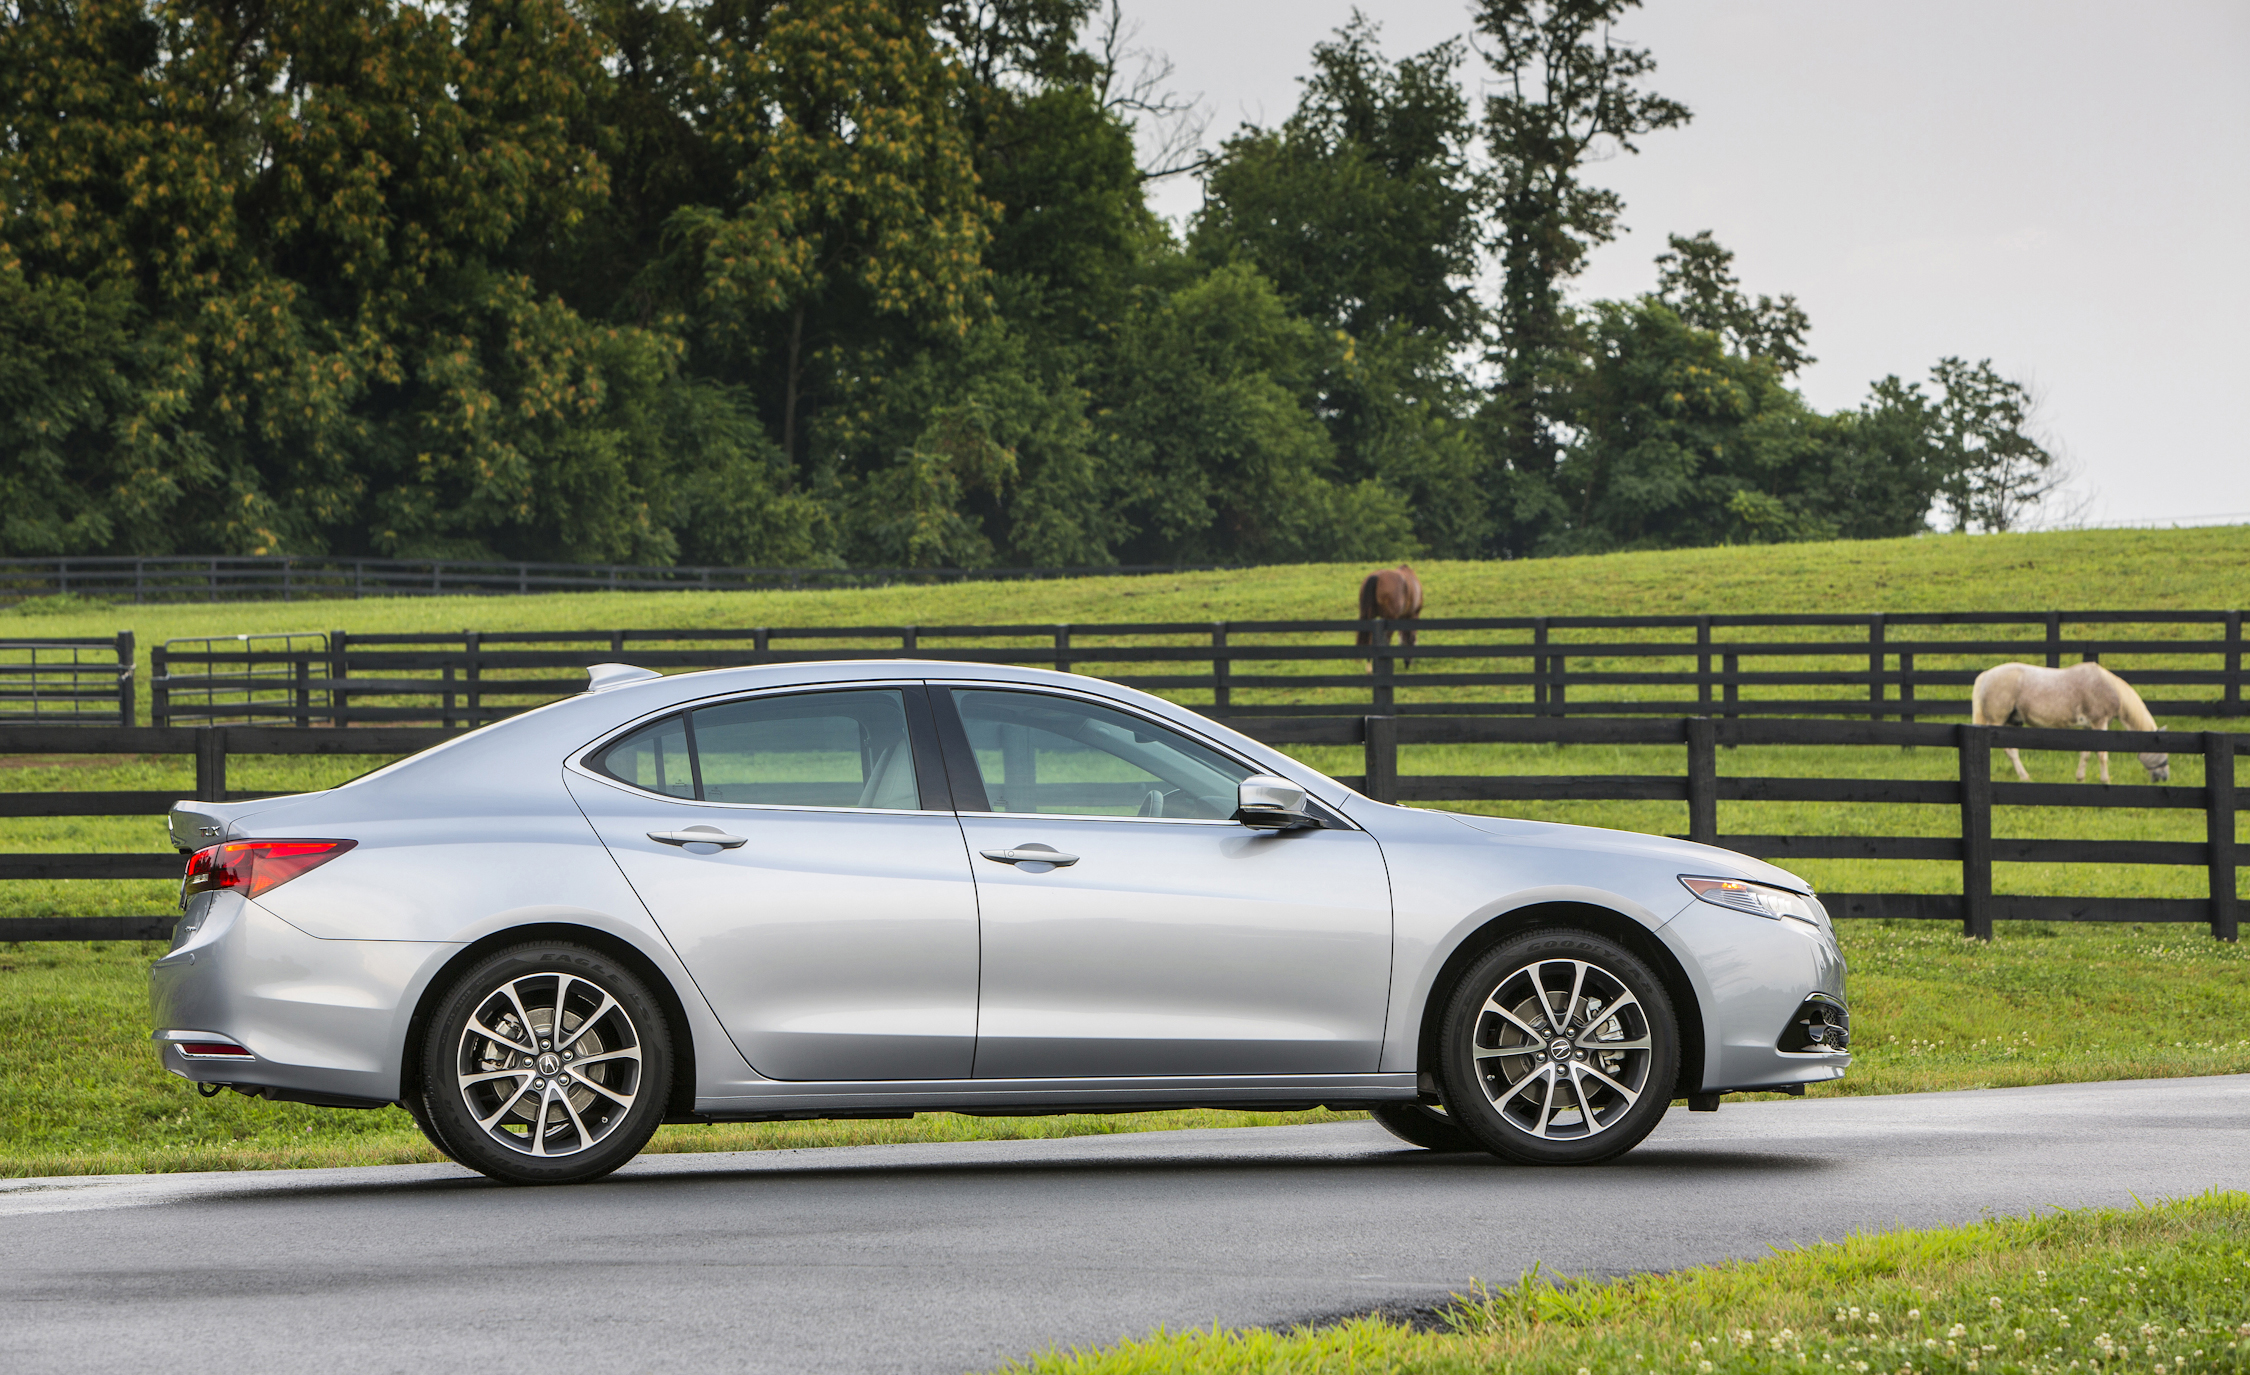 2015 Acura TLX 3.5L SH-AWD Exterior Side View